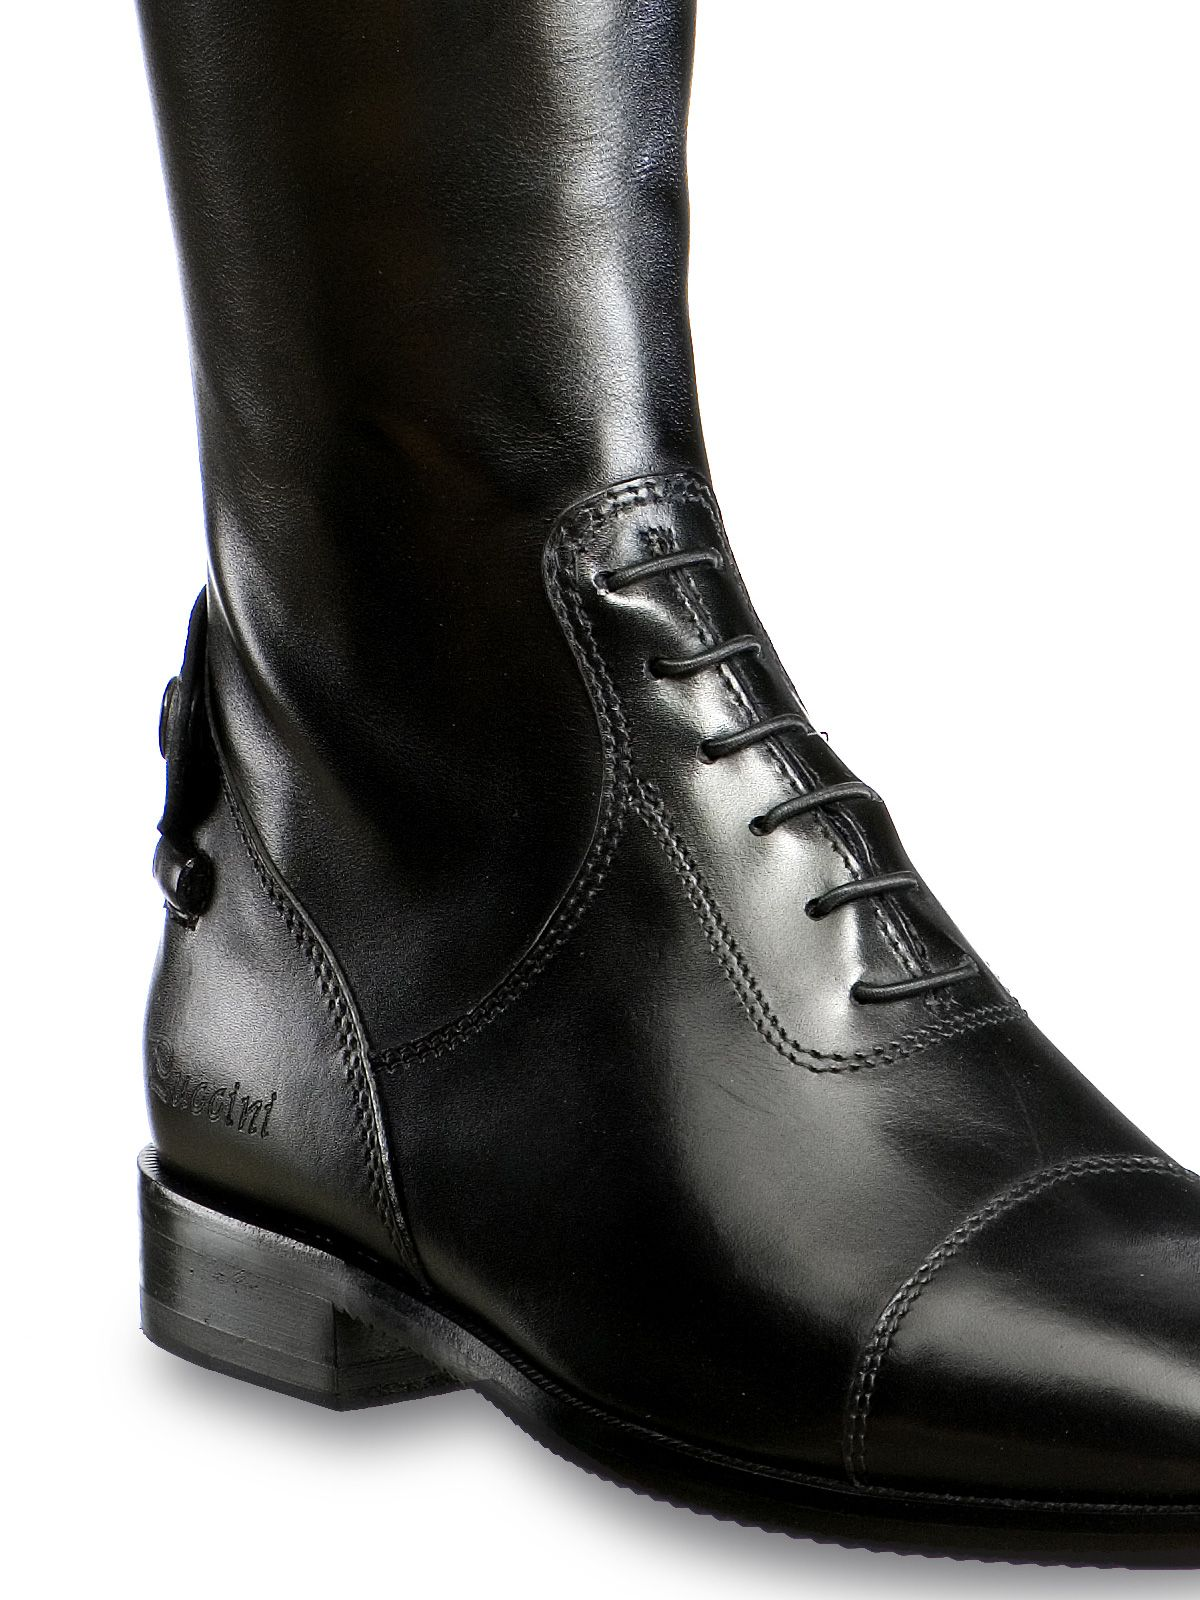 Tucci PAGANINI riding boots zip detail. Luxury Italian shoes ...